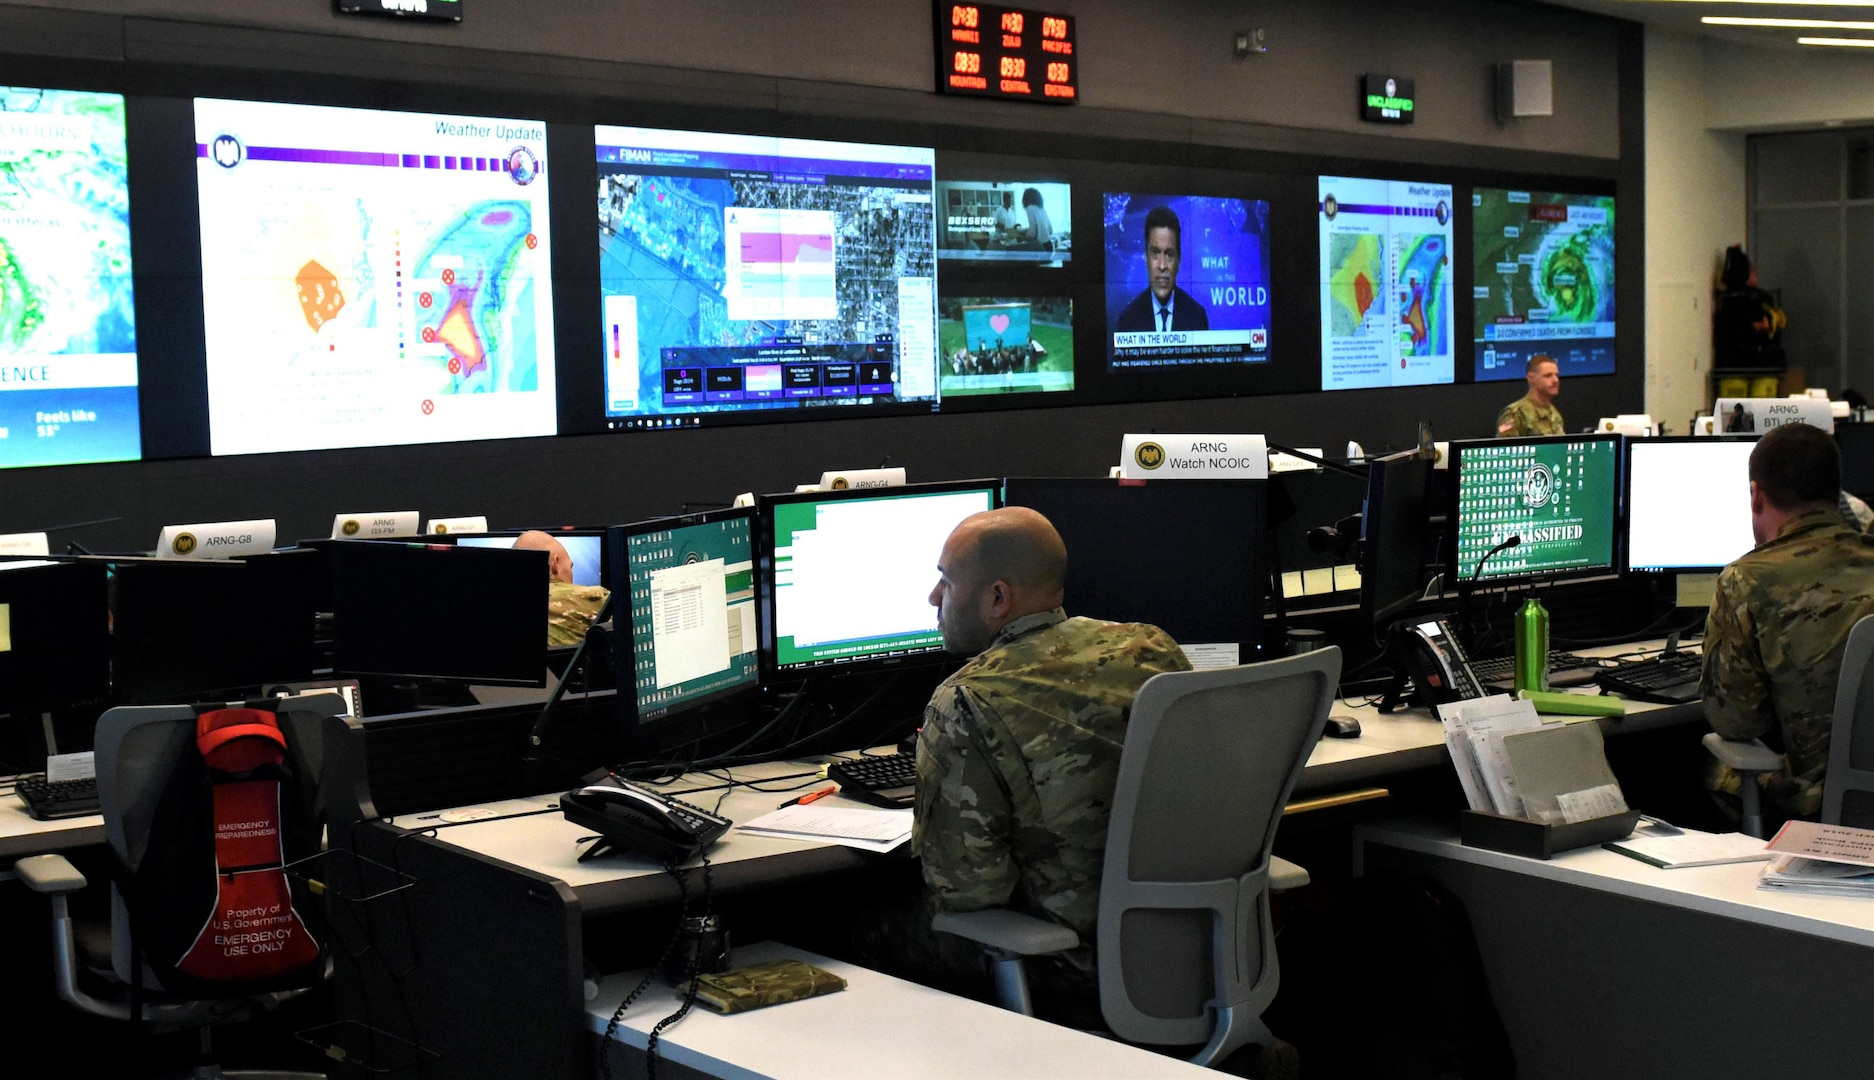 National Guard members monitor Guard activity stemming from Hurricane Florence at the National Guard Coordination Center in Arlington, Virginia, Sept. 16, 2018. In 2020, the NGCC helped coordinate response activities with federal agency partners to ensure Guard units had what they needed to support local and state authorities during the coronavirus pandemic, civil unrest, cyber events and natural disasters.